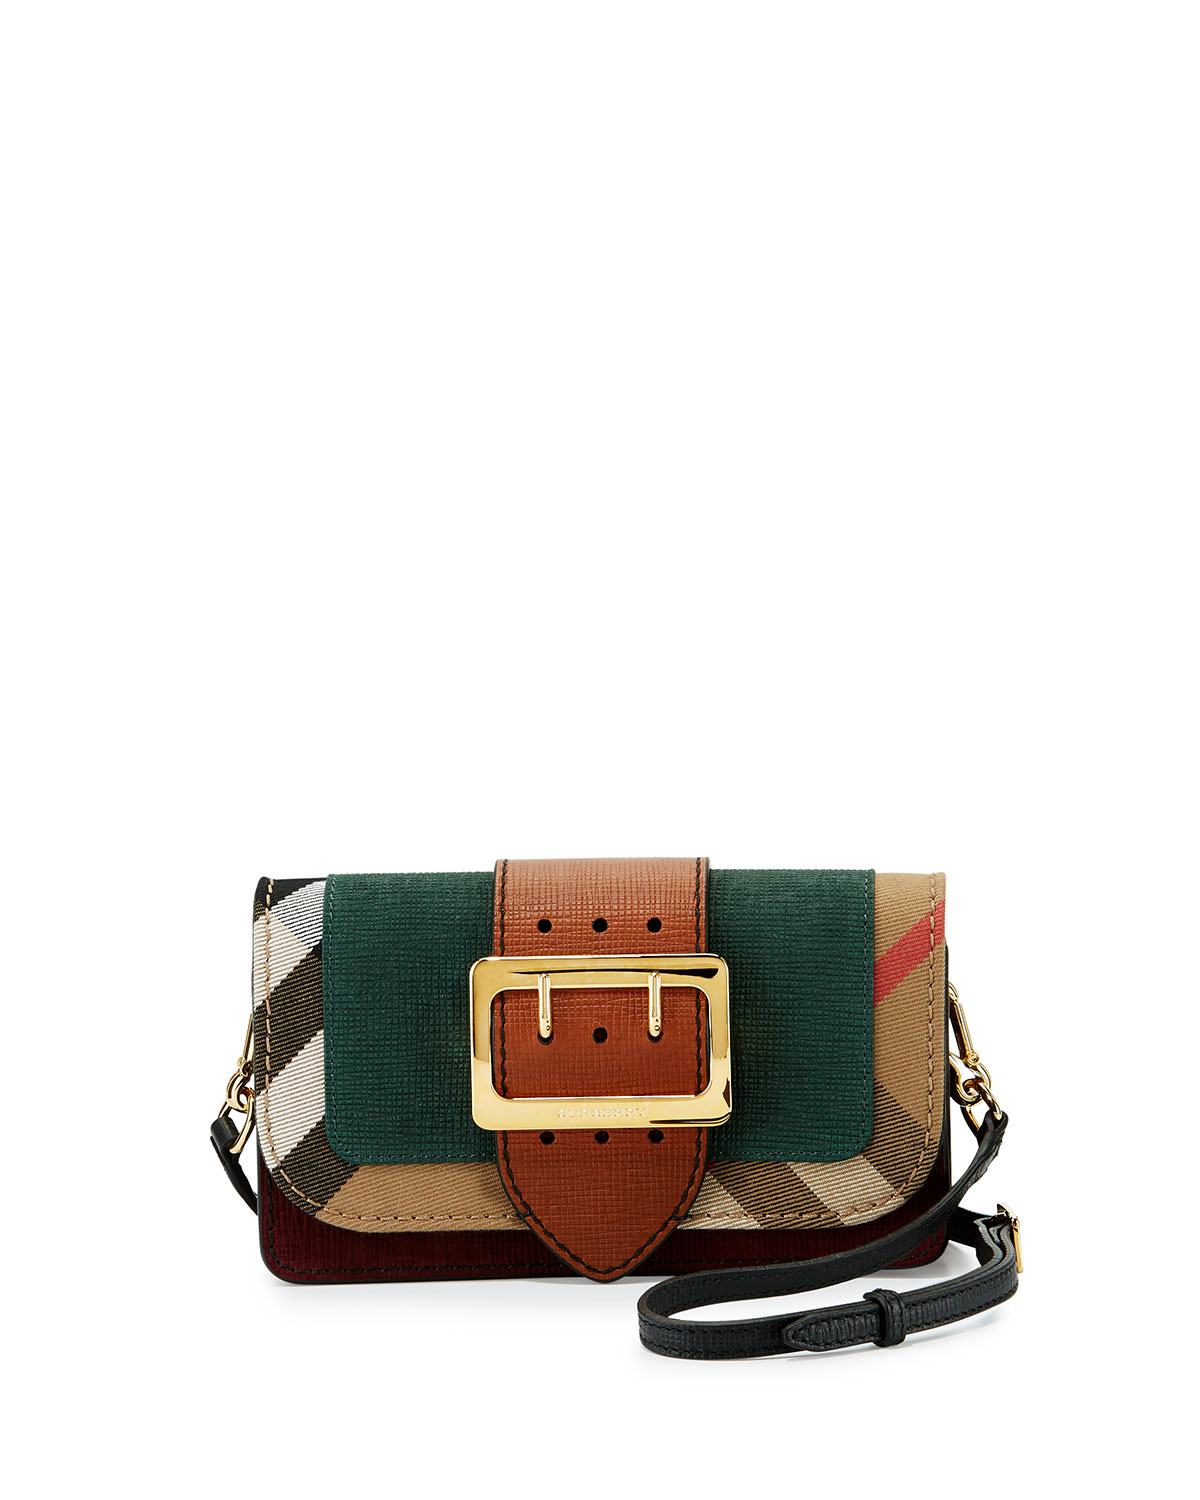 51884ad0ee1c Burberry Small Buckle Suede   House Check Shoulder Bag